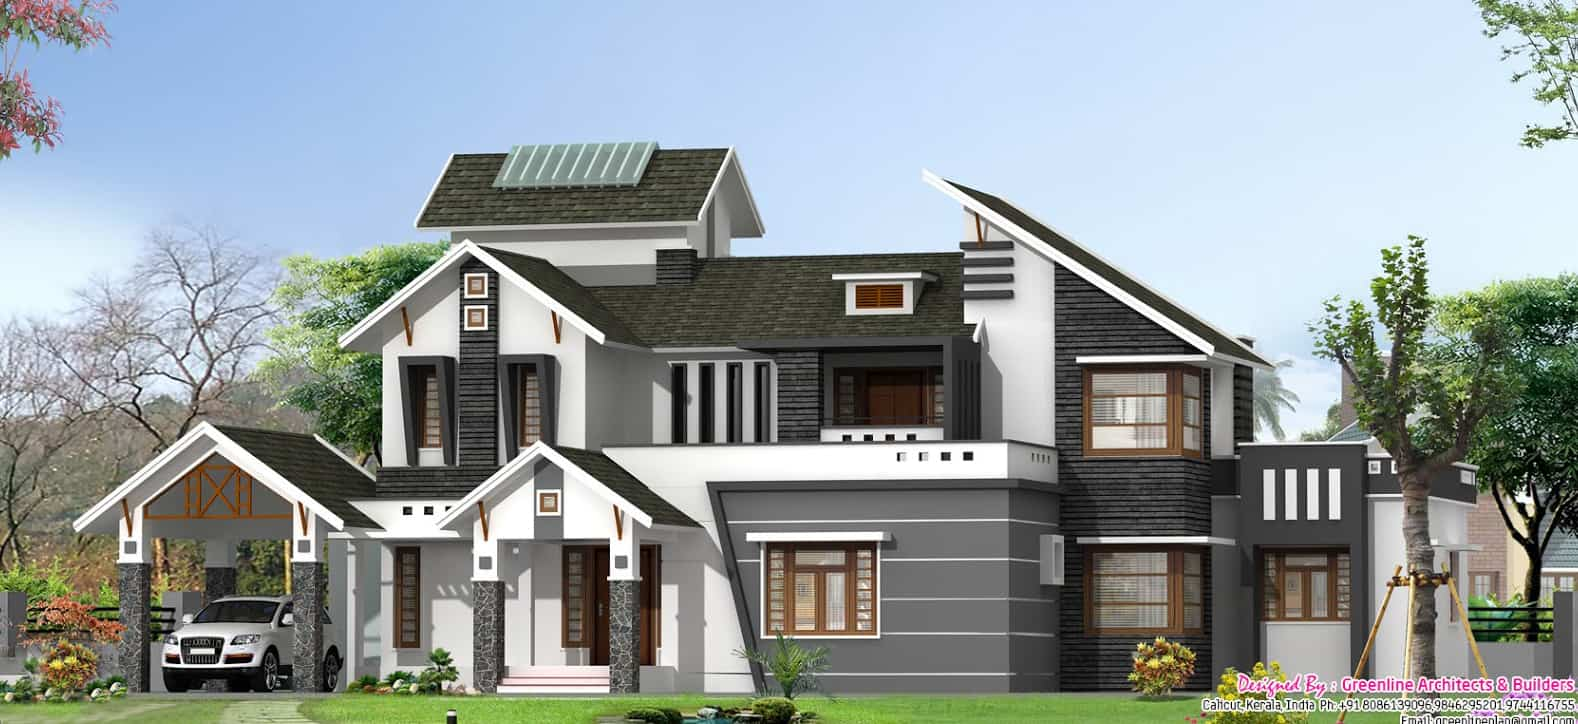 Unique house designs keralahouseplanner for Interesting house designs